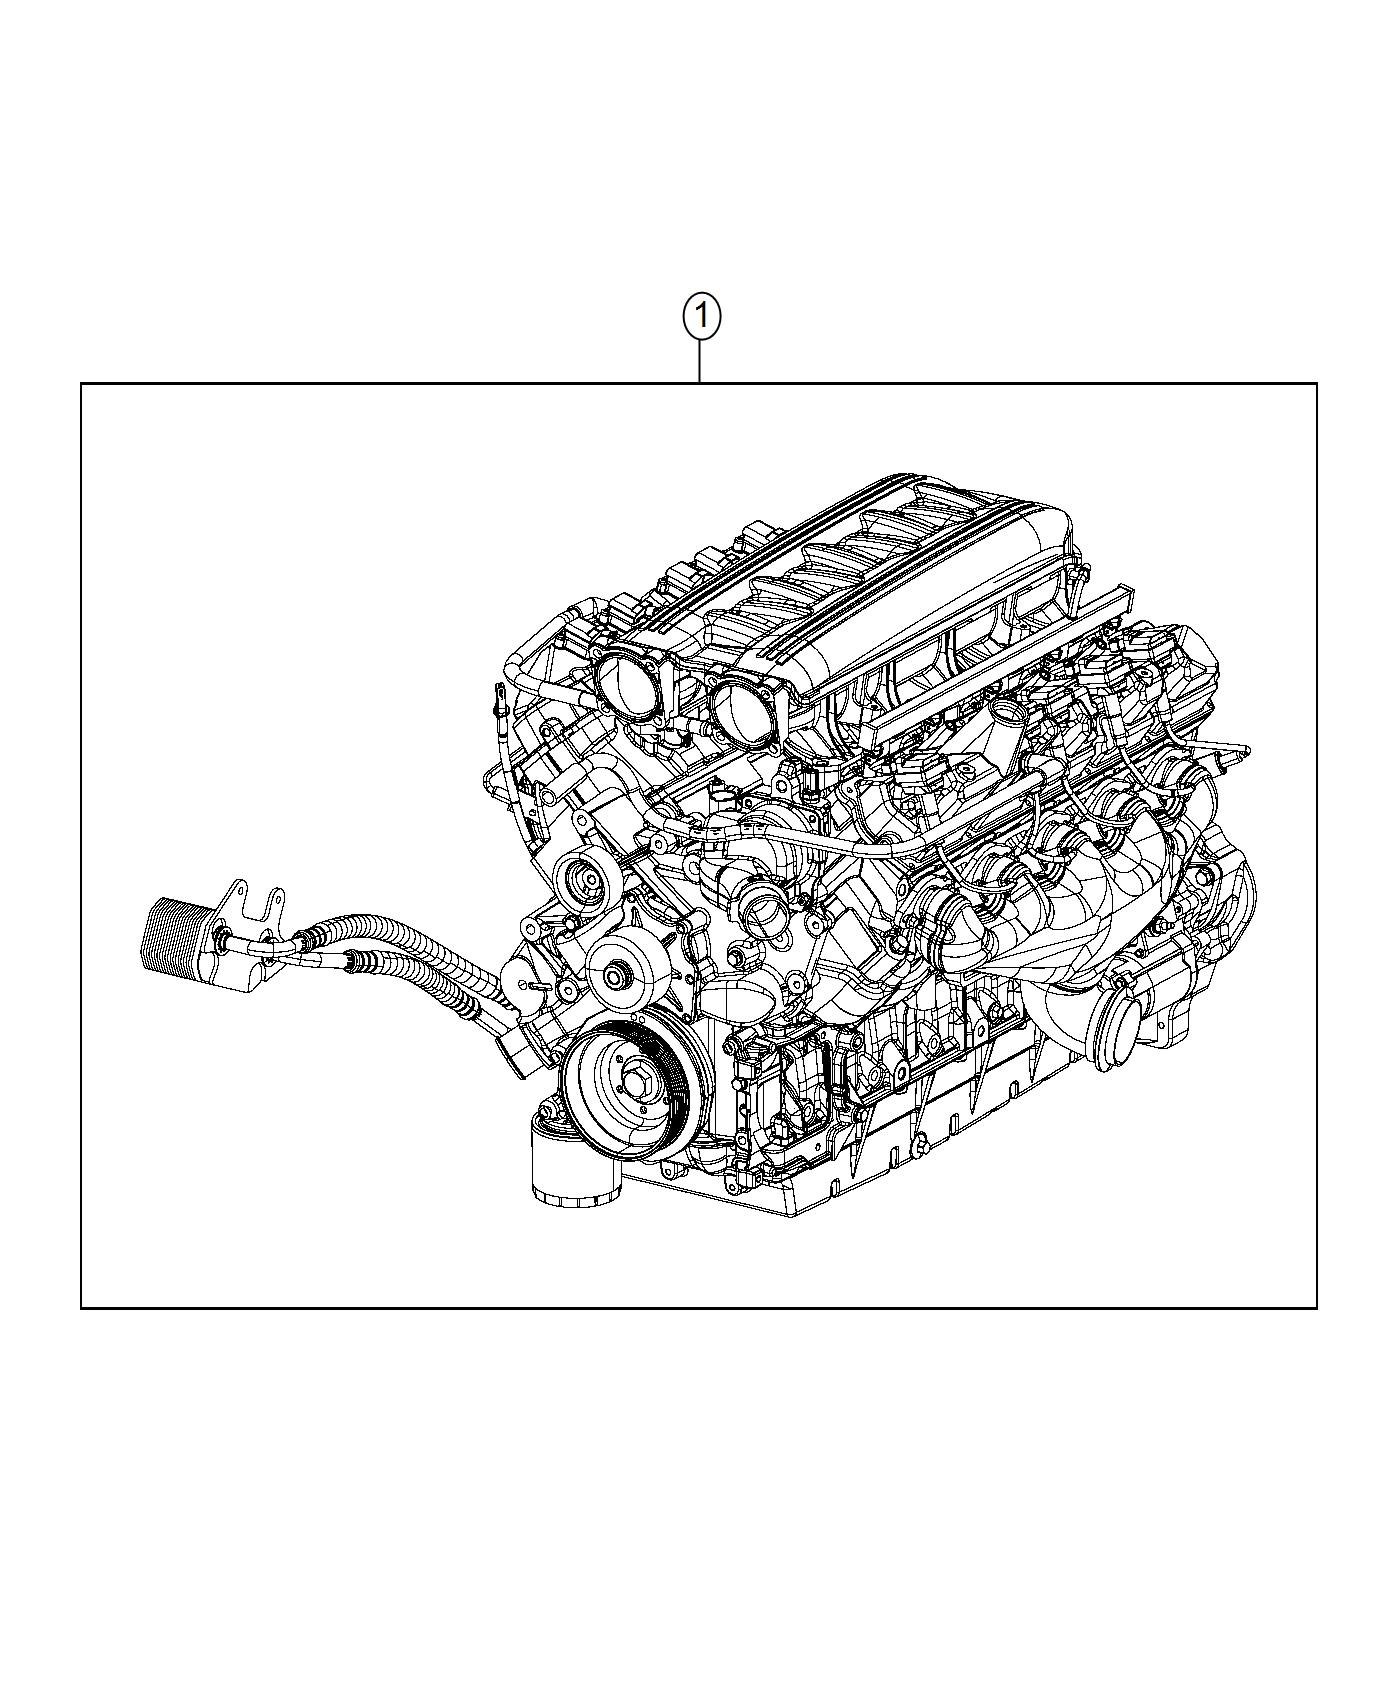 [DIAGRAM] Ford V10 Alternator Wiring Diagram FULL Version